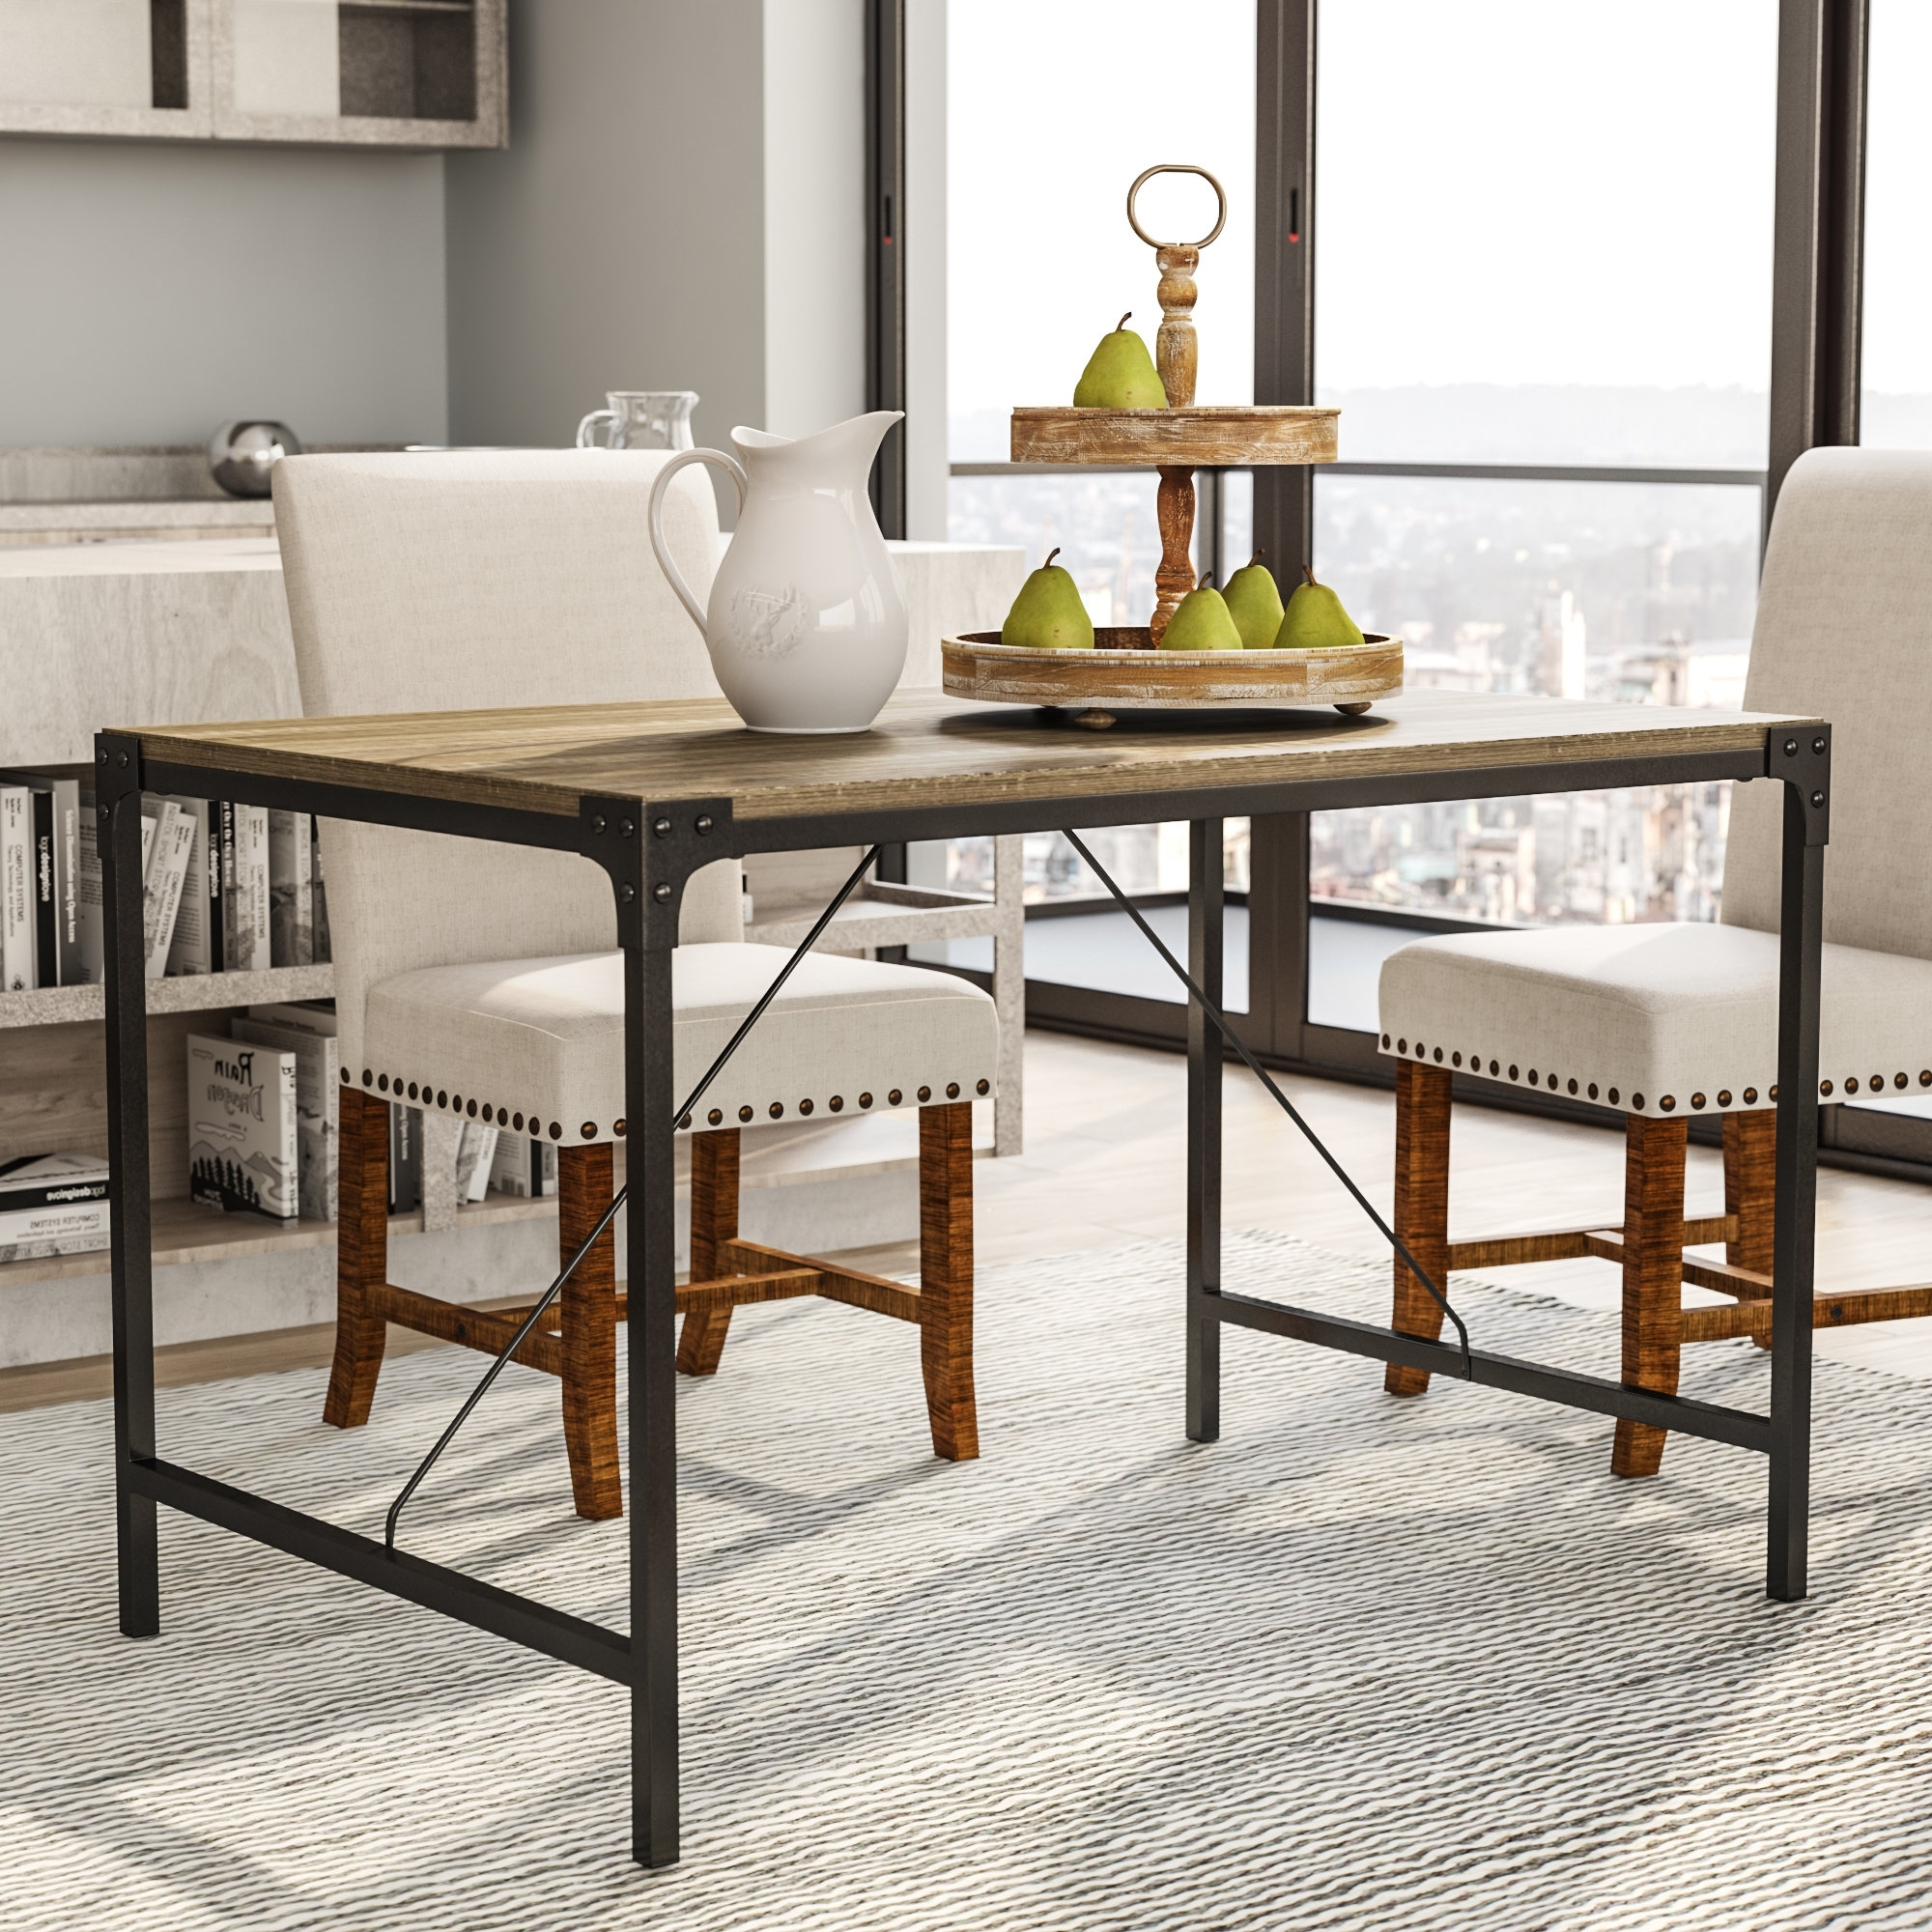 Most Current Madeline Angle Iron And Wood Dining Table Within Wood Dining Tables (Gallery 22 of 25)